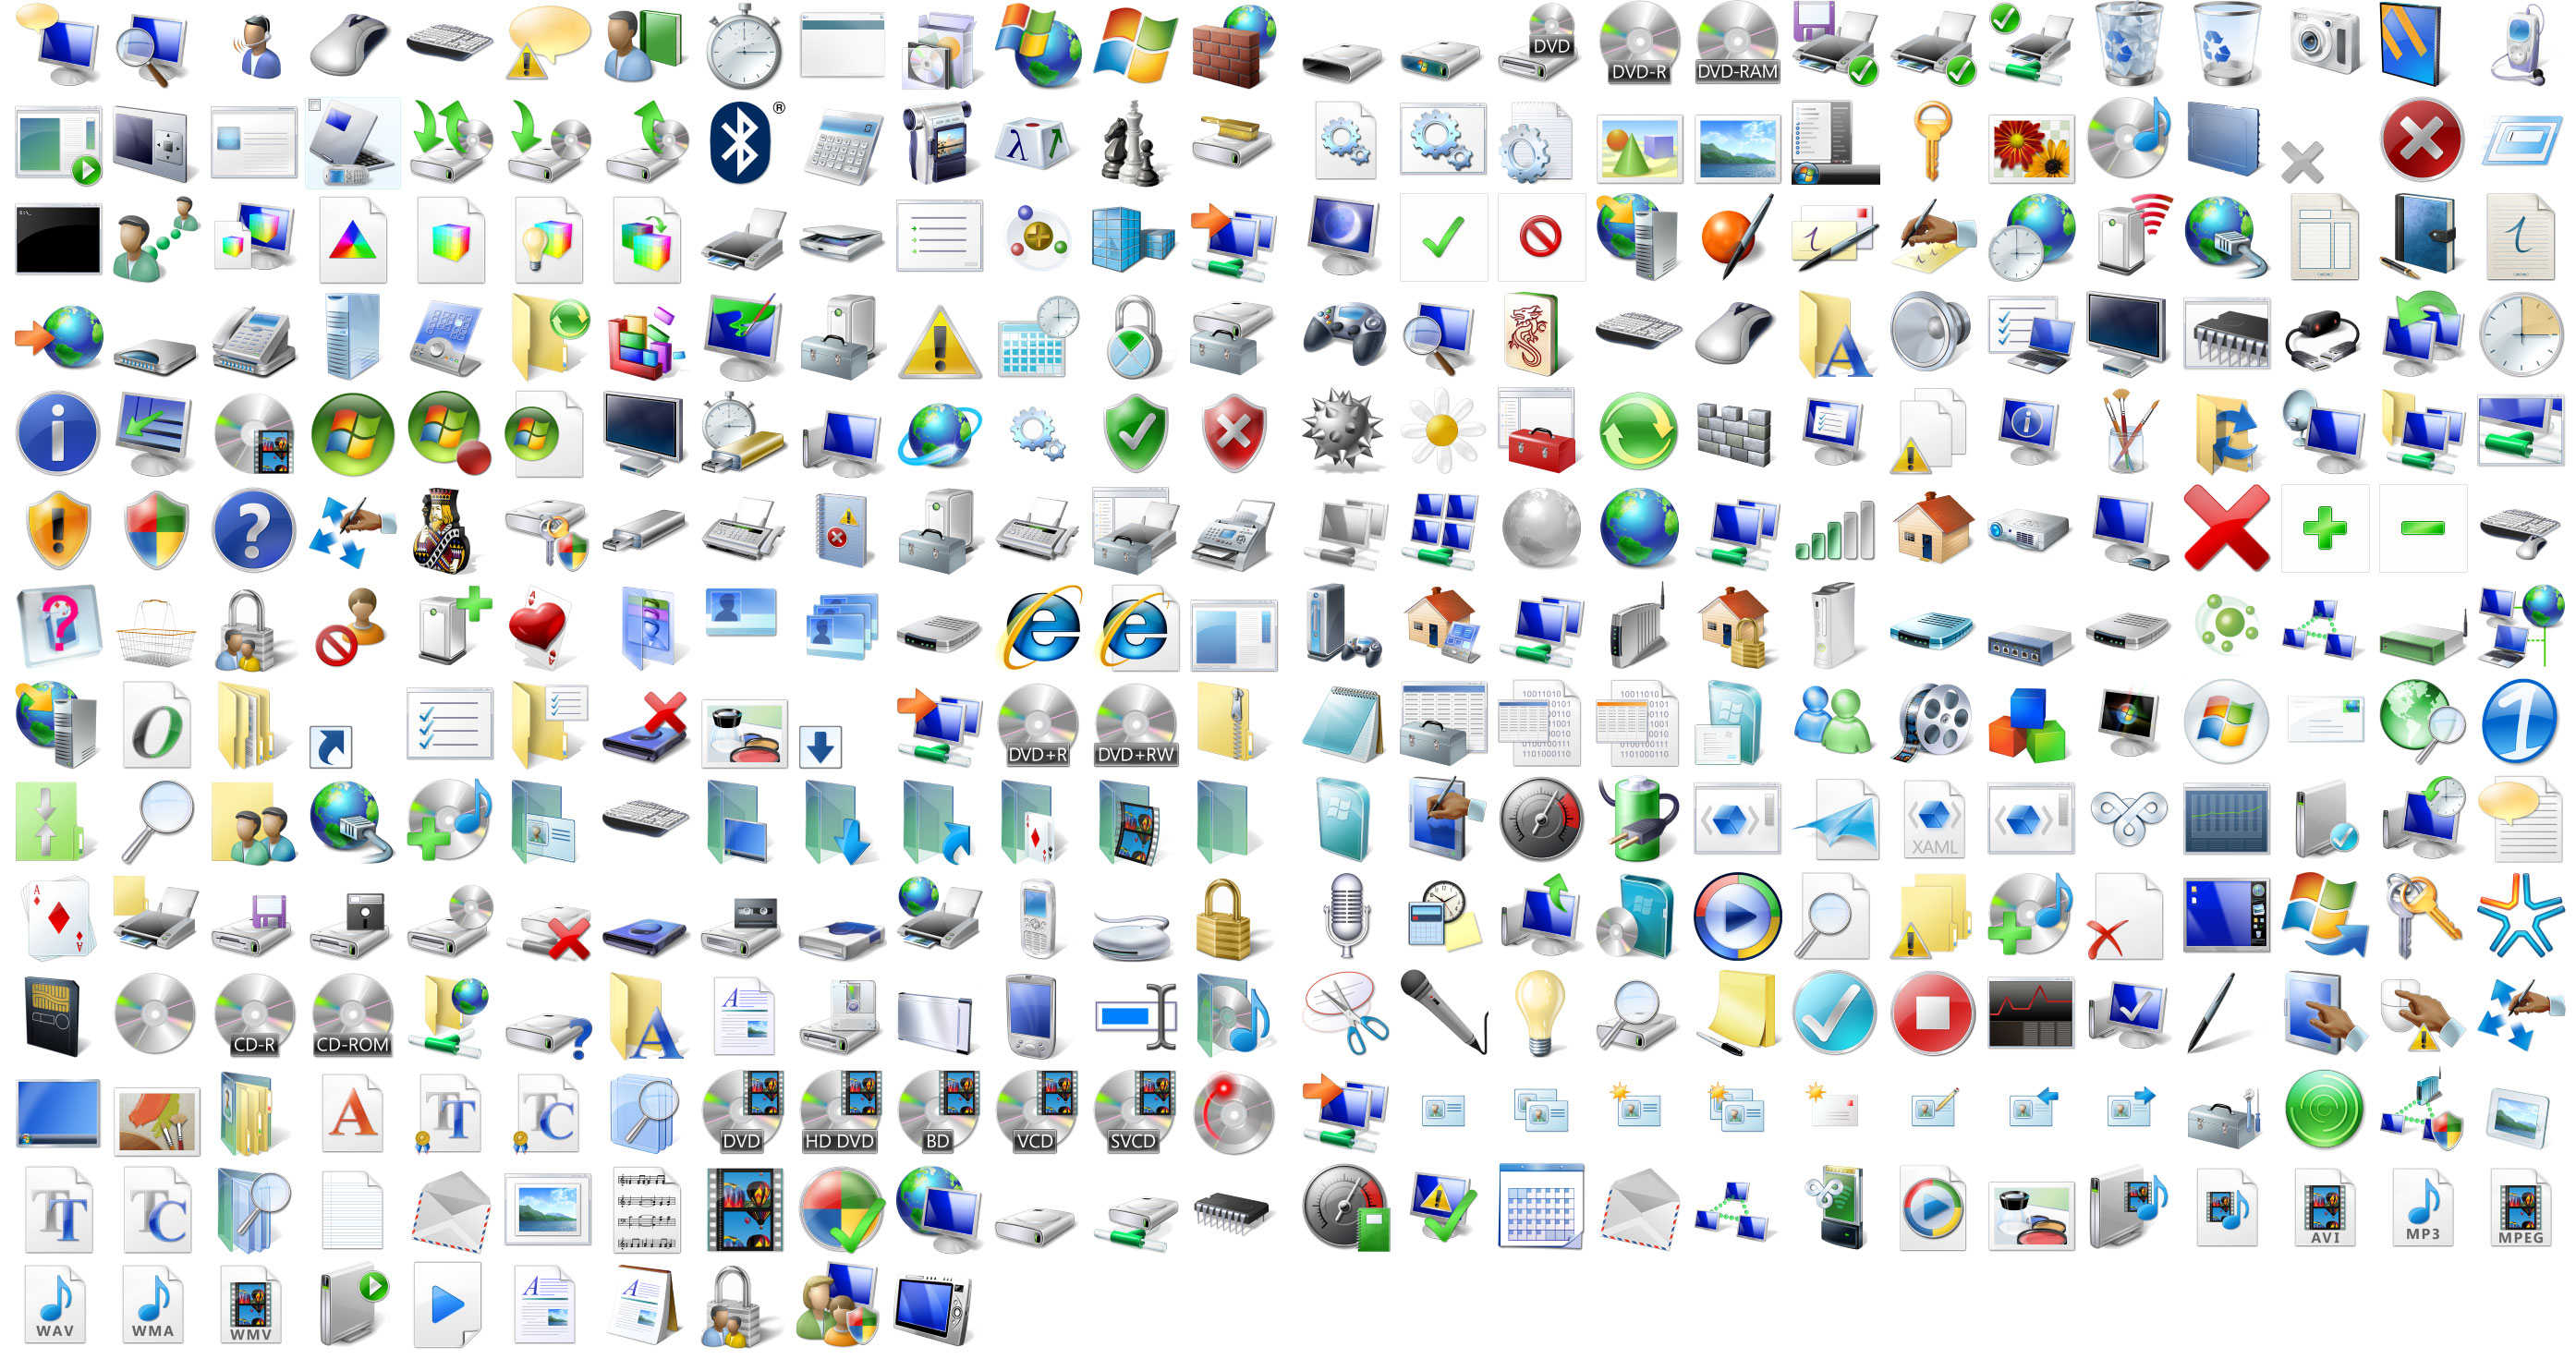 17 Windows Icons Free Images